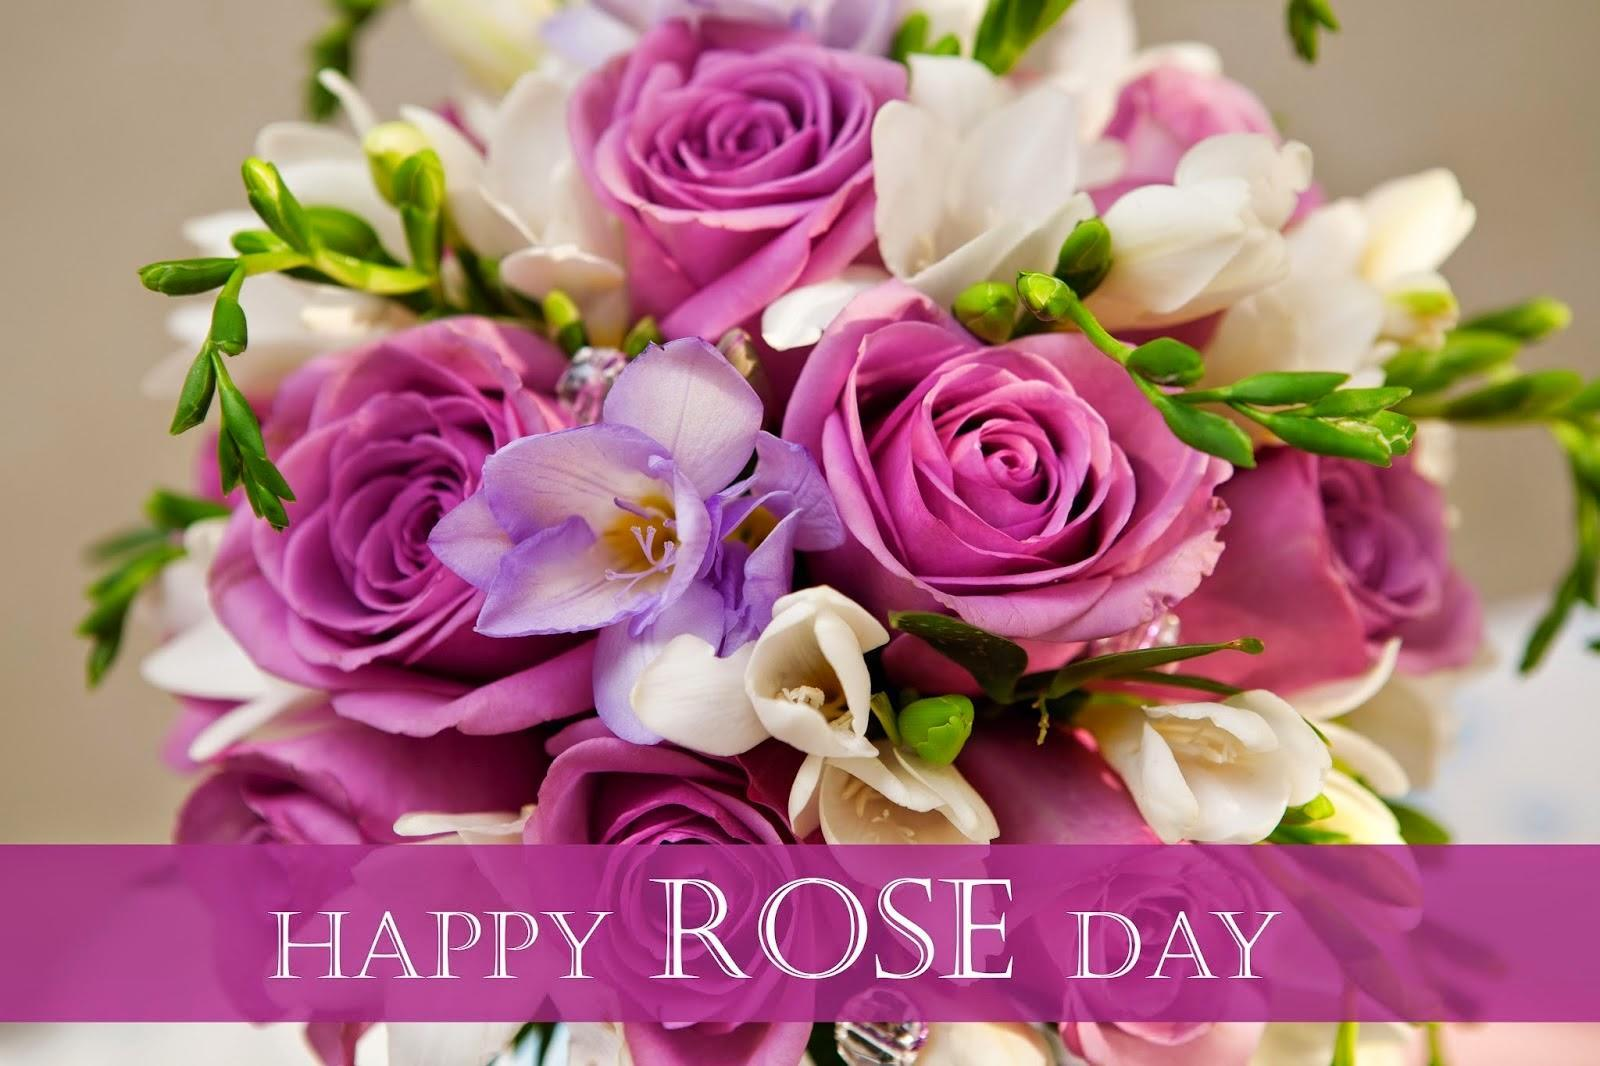 All-New-Happy-Rose-Day-Love-Quotes-Romantic-Cute-Red-Rose-Picturesimage-for-Girlfriend-Rose-day-Latest-HD-Wallpapers-photos-Sweet-pic-for-her-Girlfriend-30